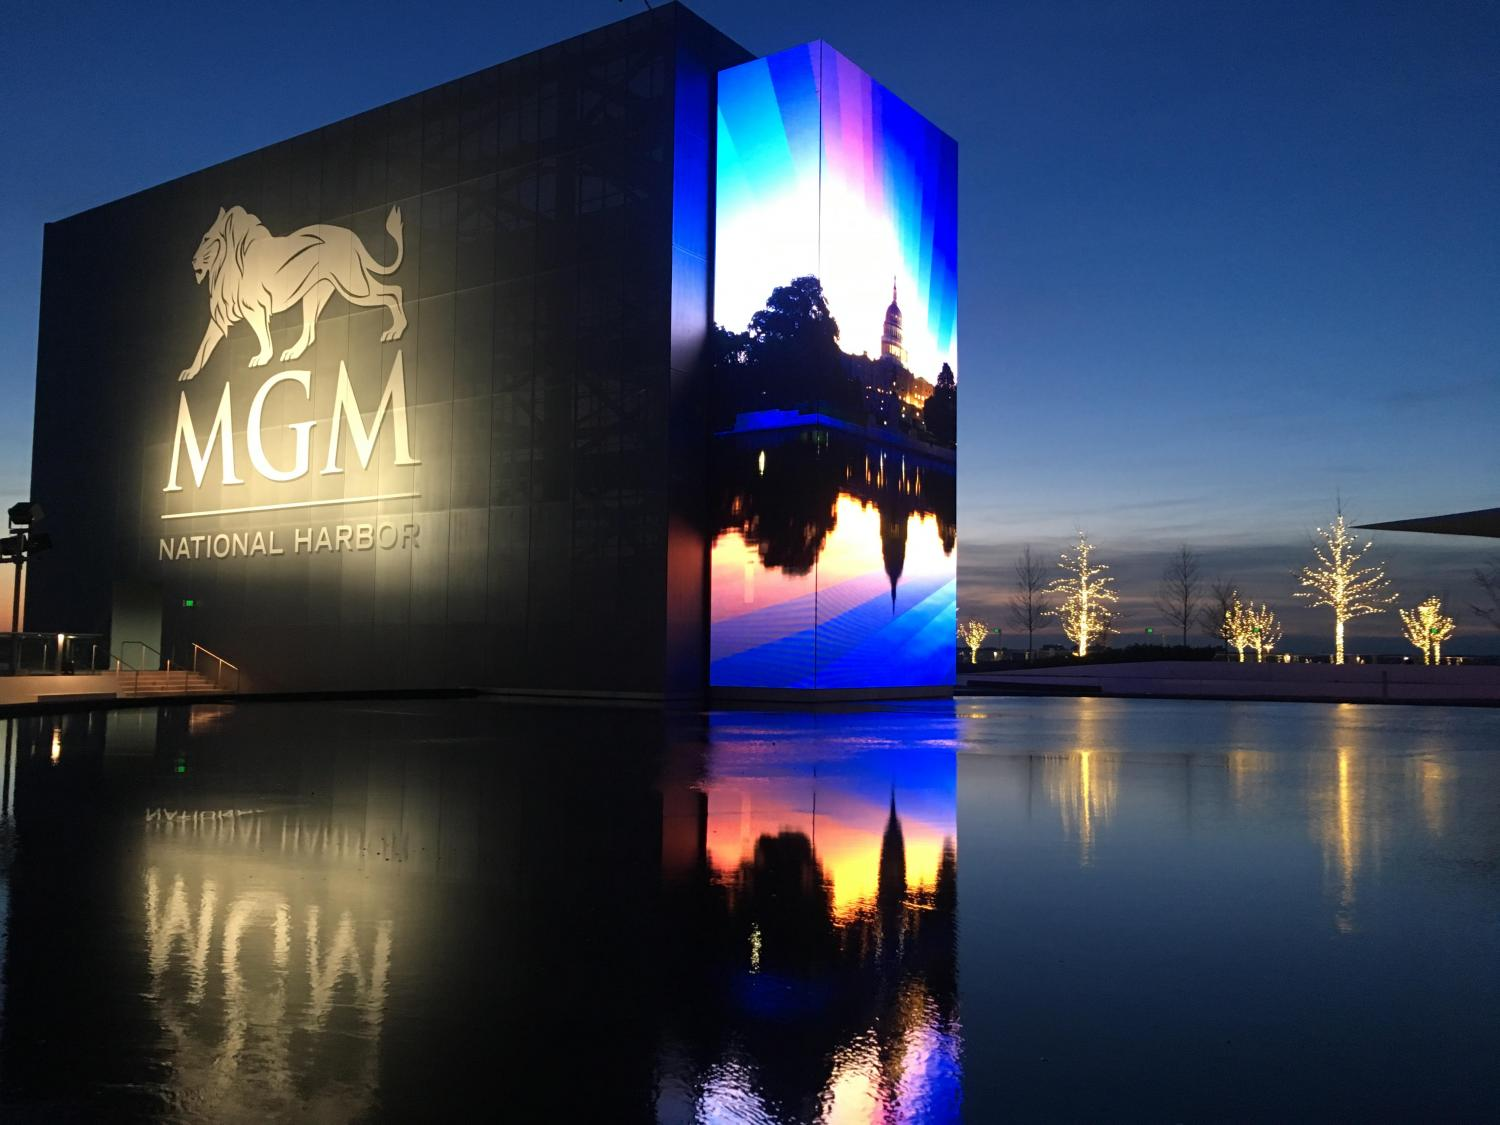 MGM-National-harbor.jpg